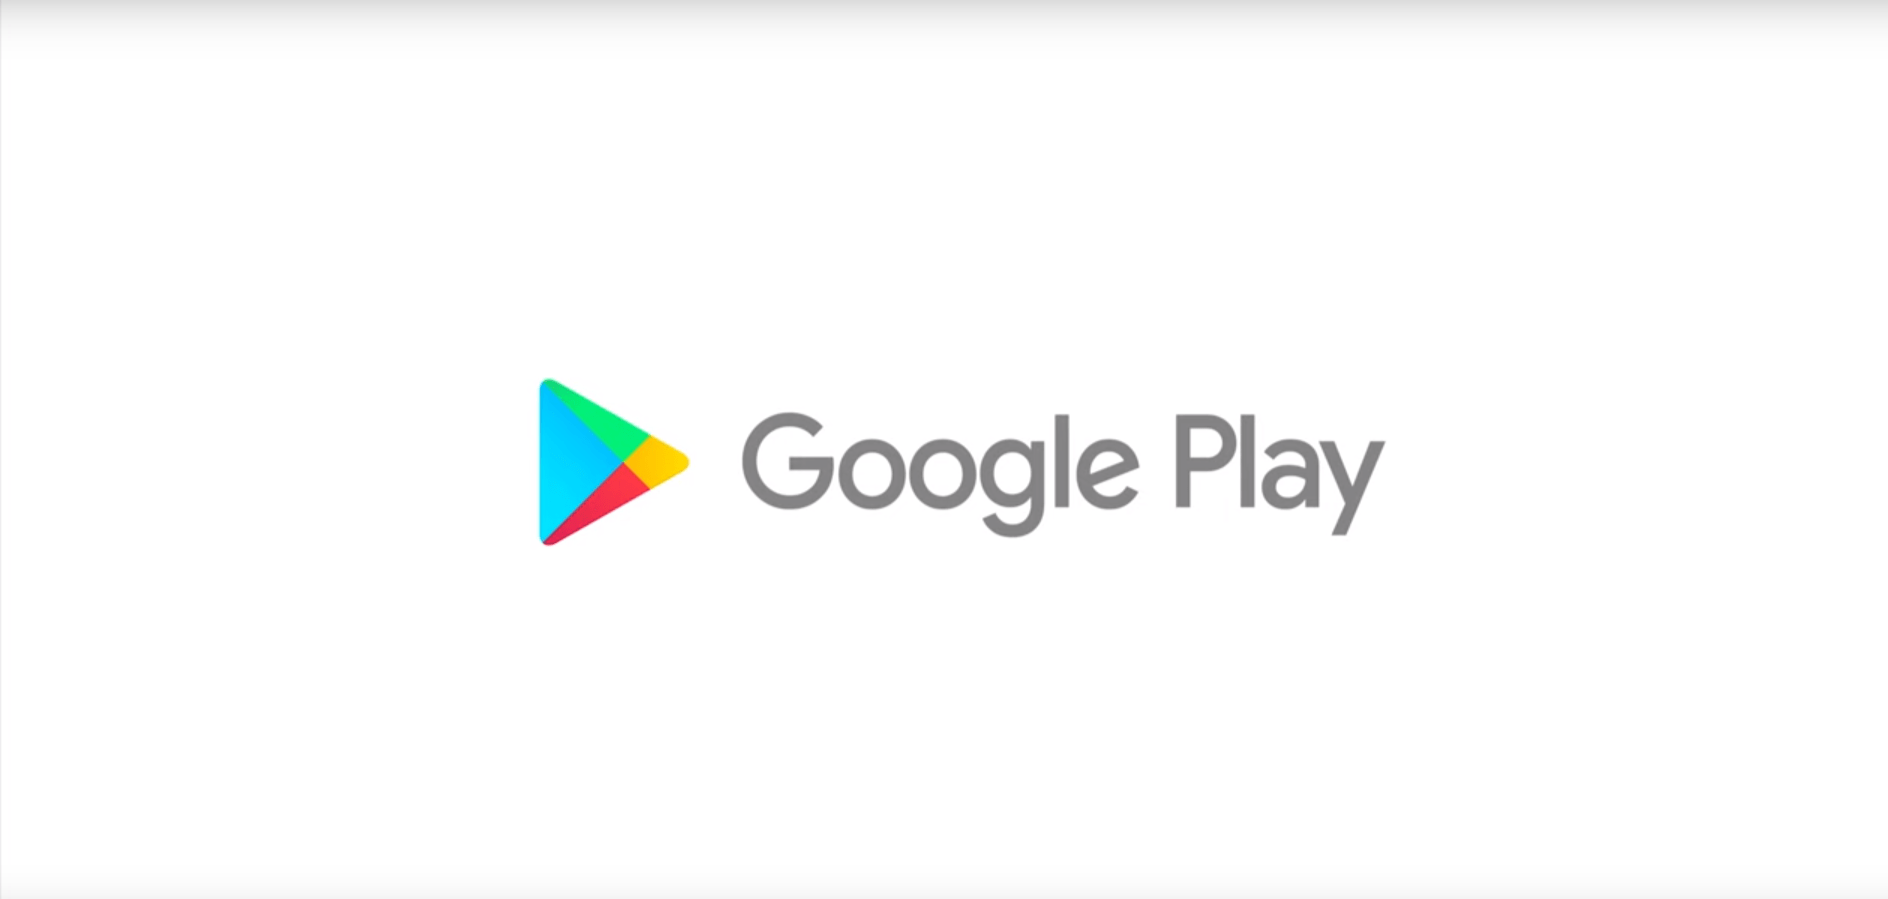 Google Play's Best Games Of 2019 Have Been Revealed, Including Users' Choice And Best Competitive Games